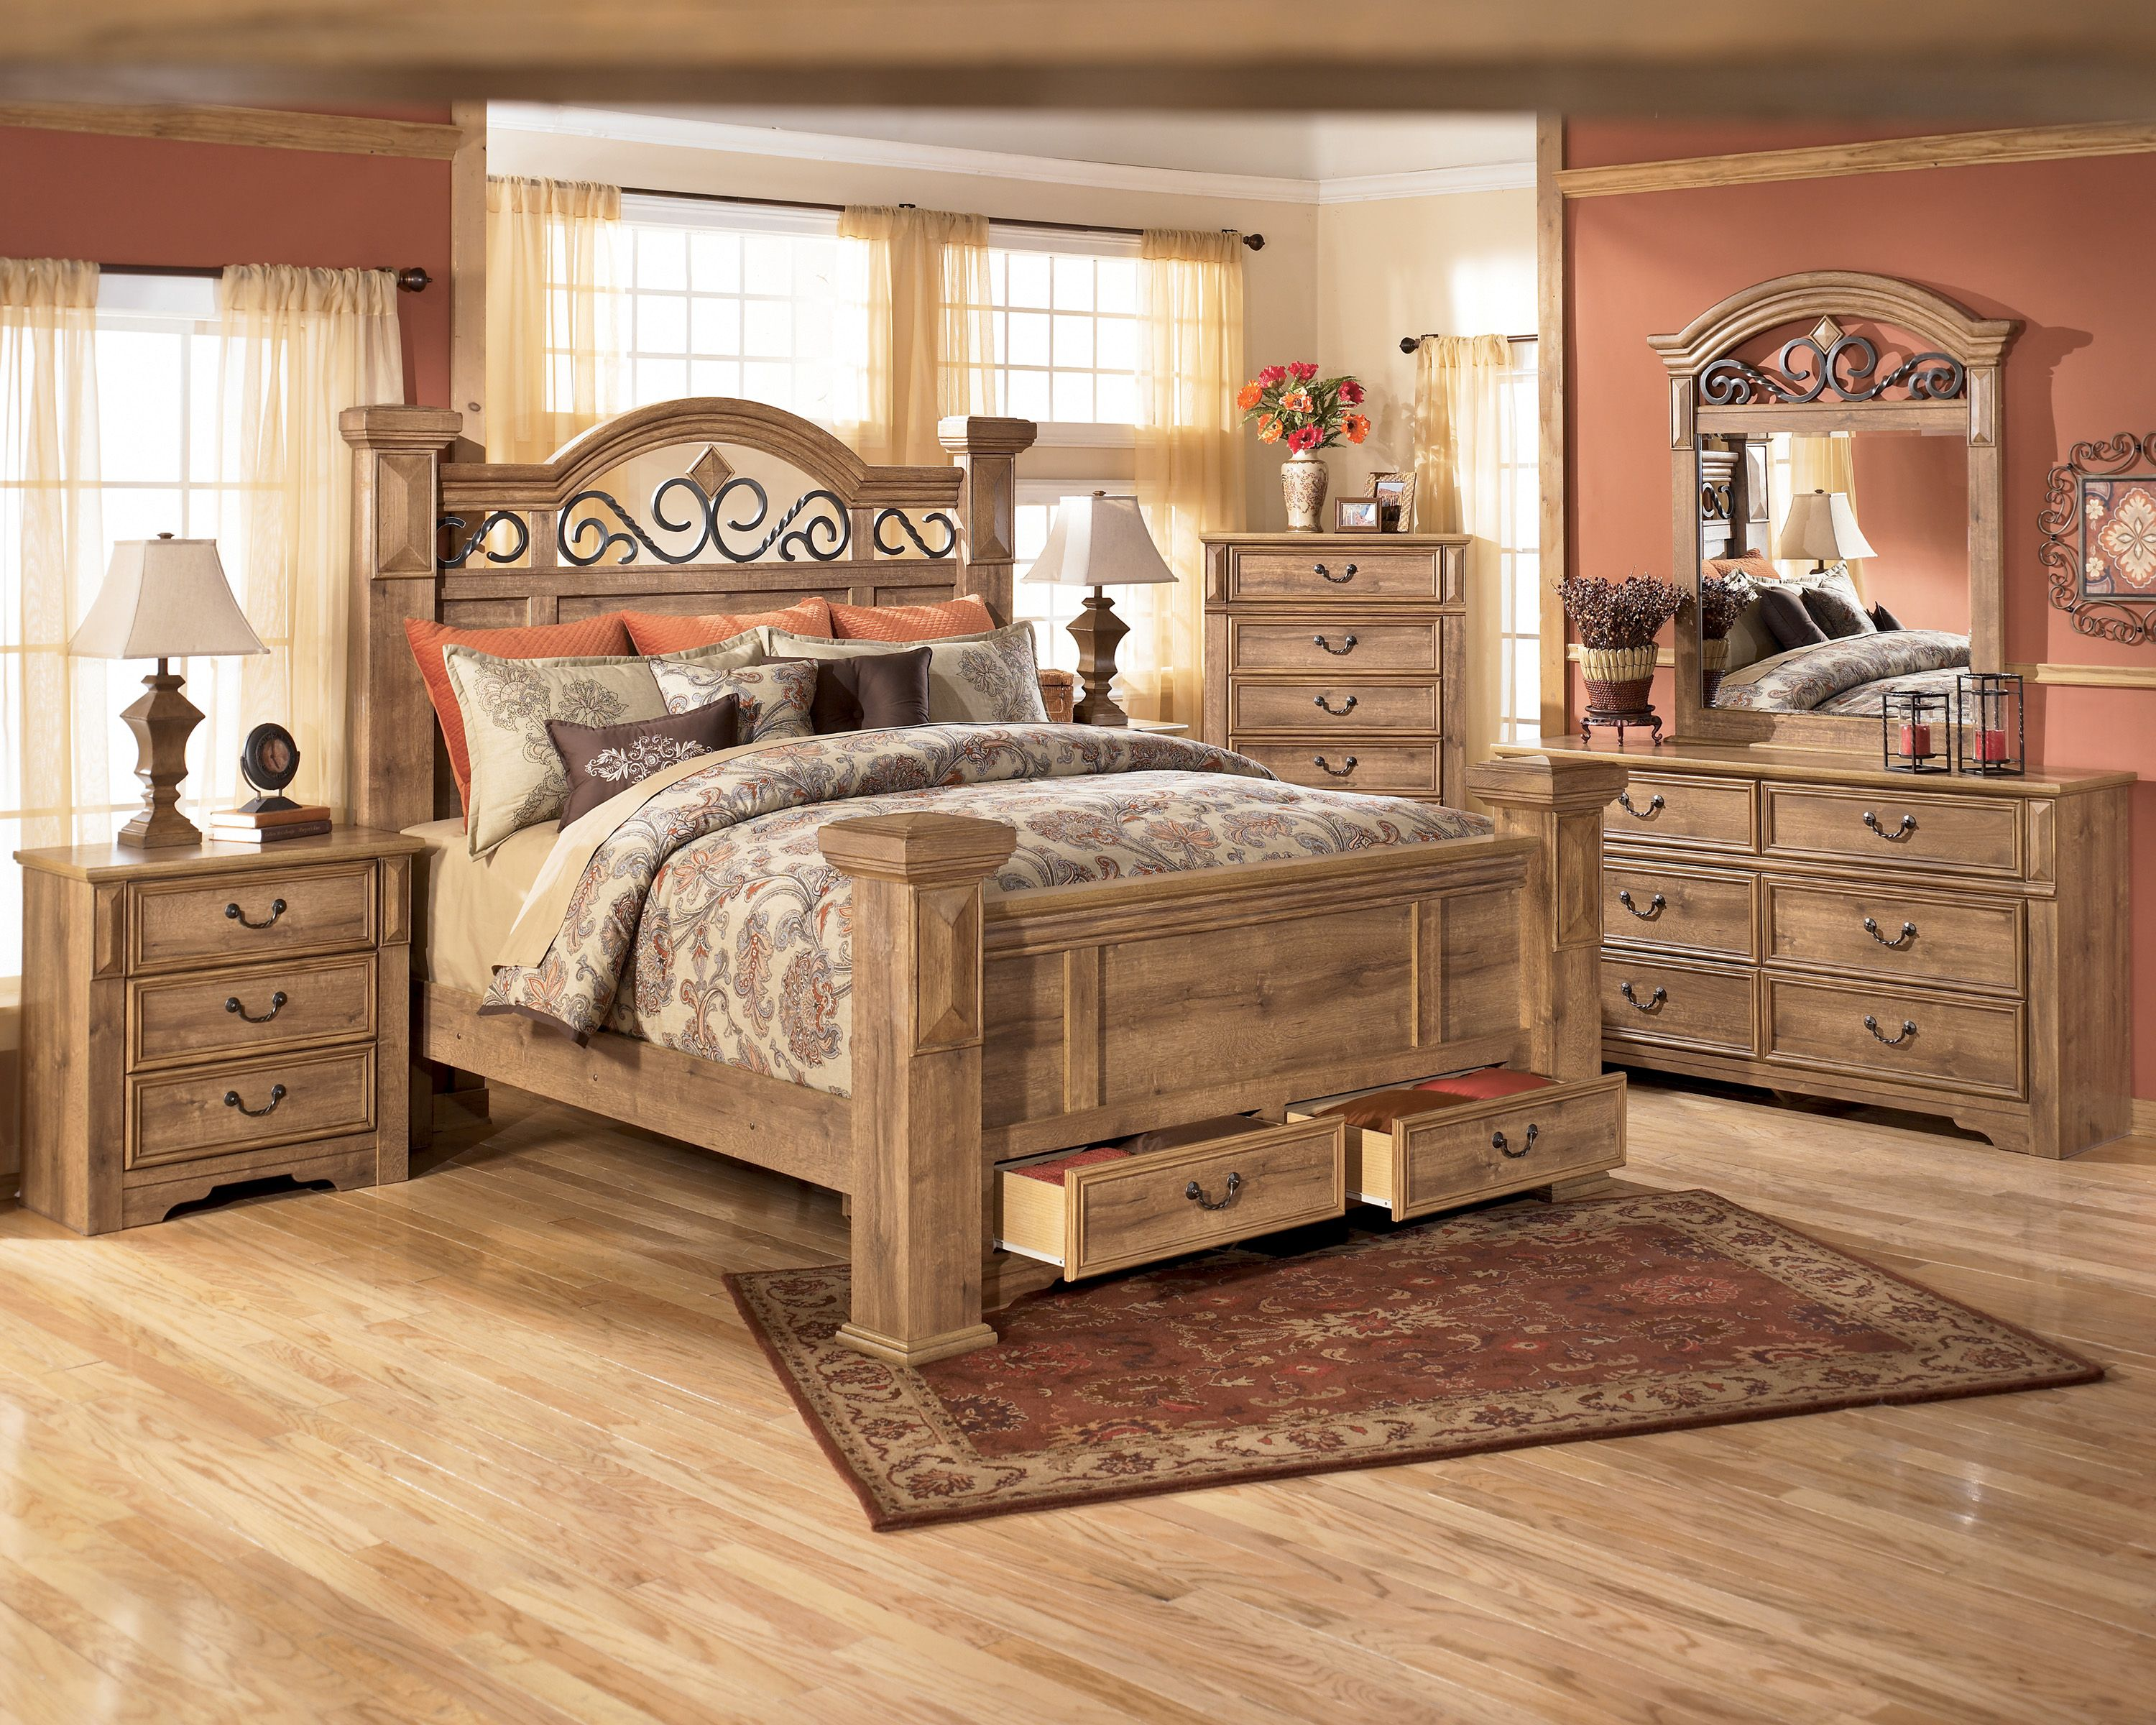 best king size bed set rosalinda - King Bed Bedroom Sets